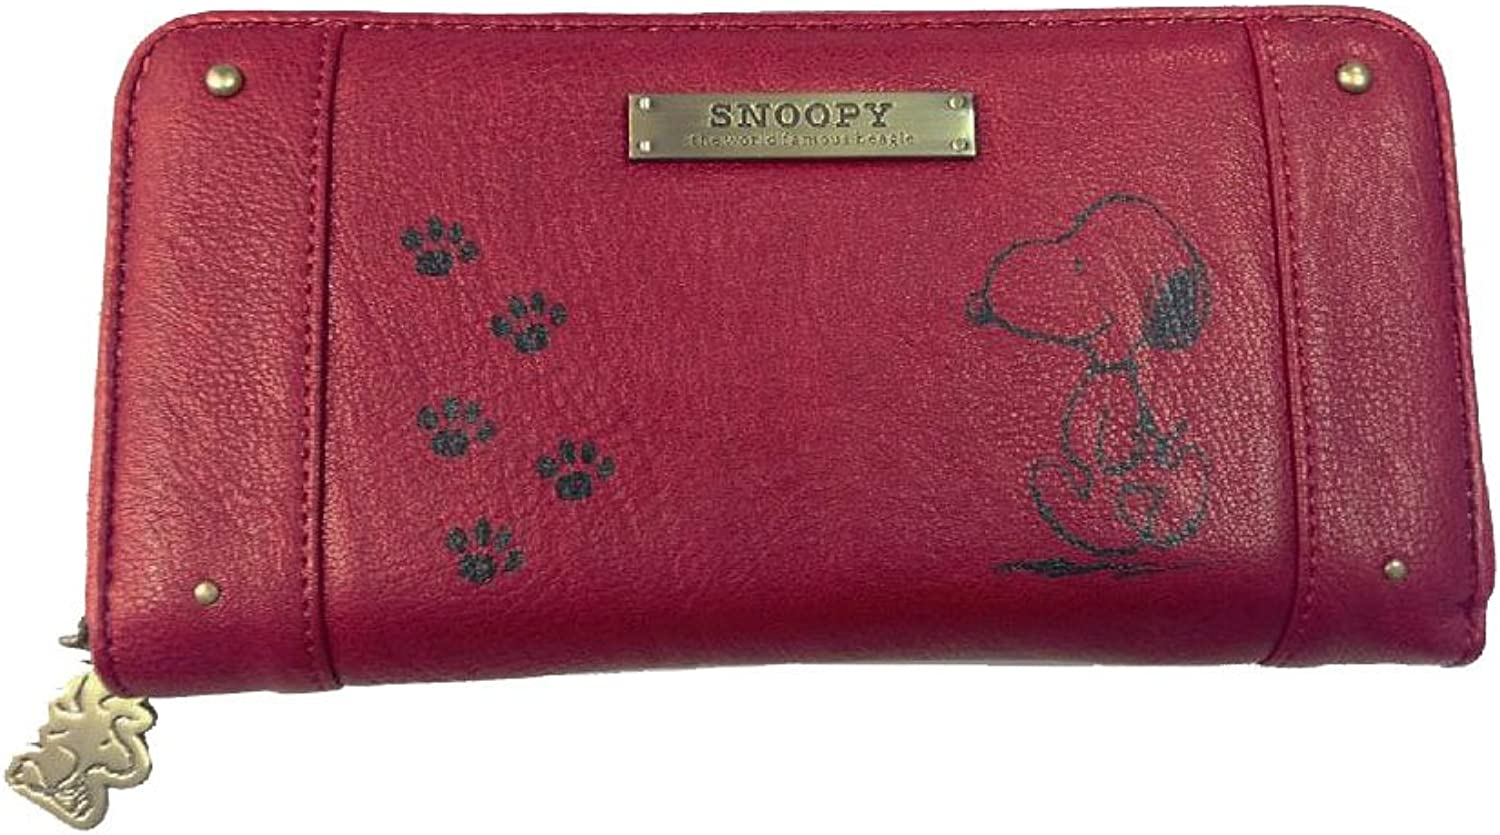 Snoopy Runde Haufen Fall rot SNP-31-RD (Japan-Import)